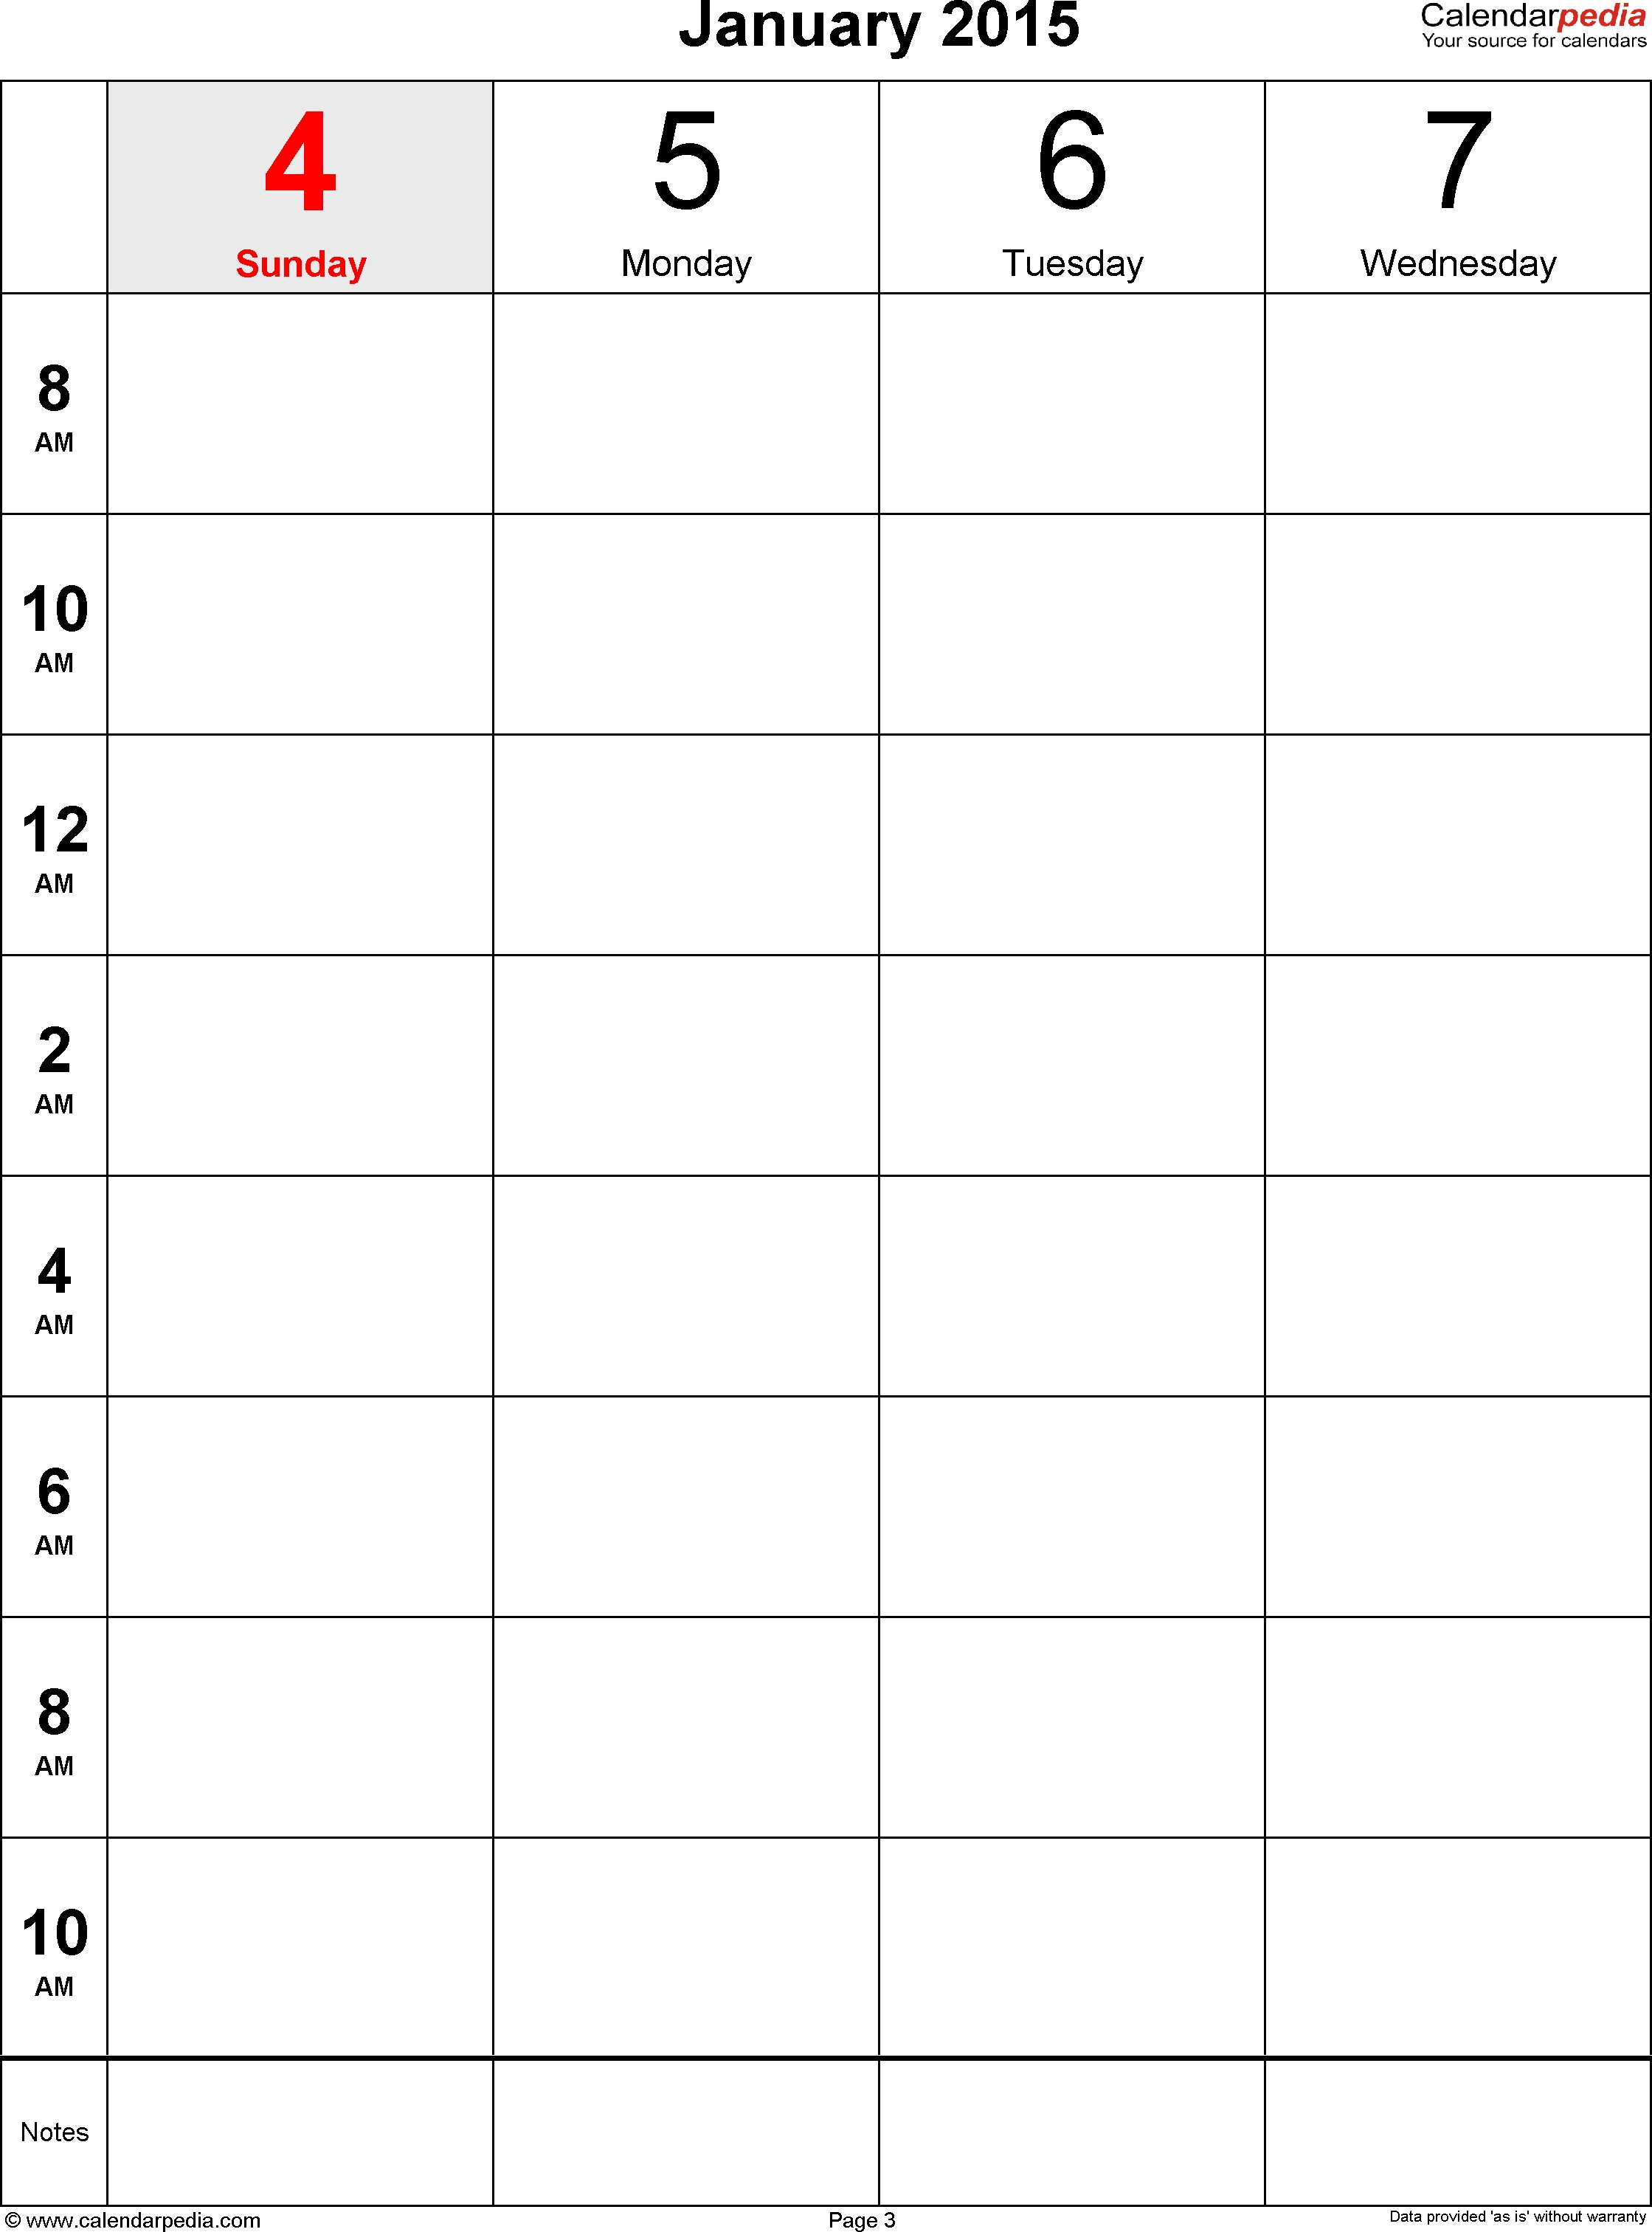 Weekly Calendars 2015 For Pdf - 12 Free Printable Templates